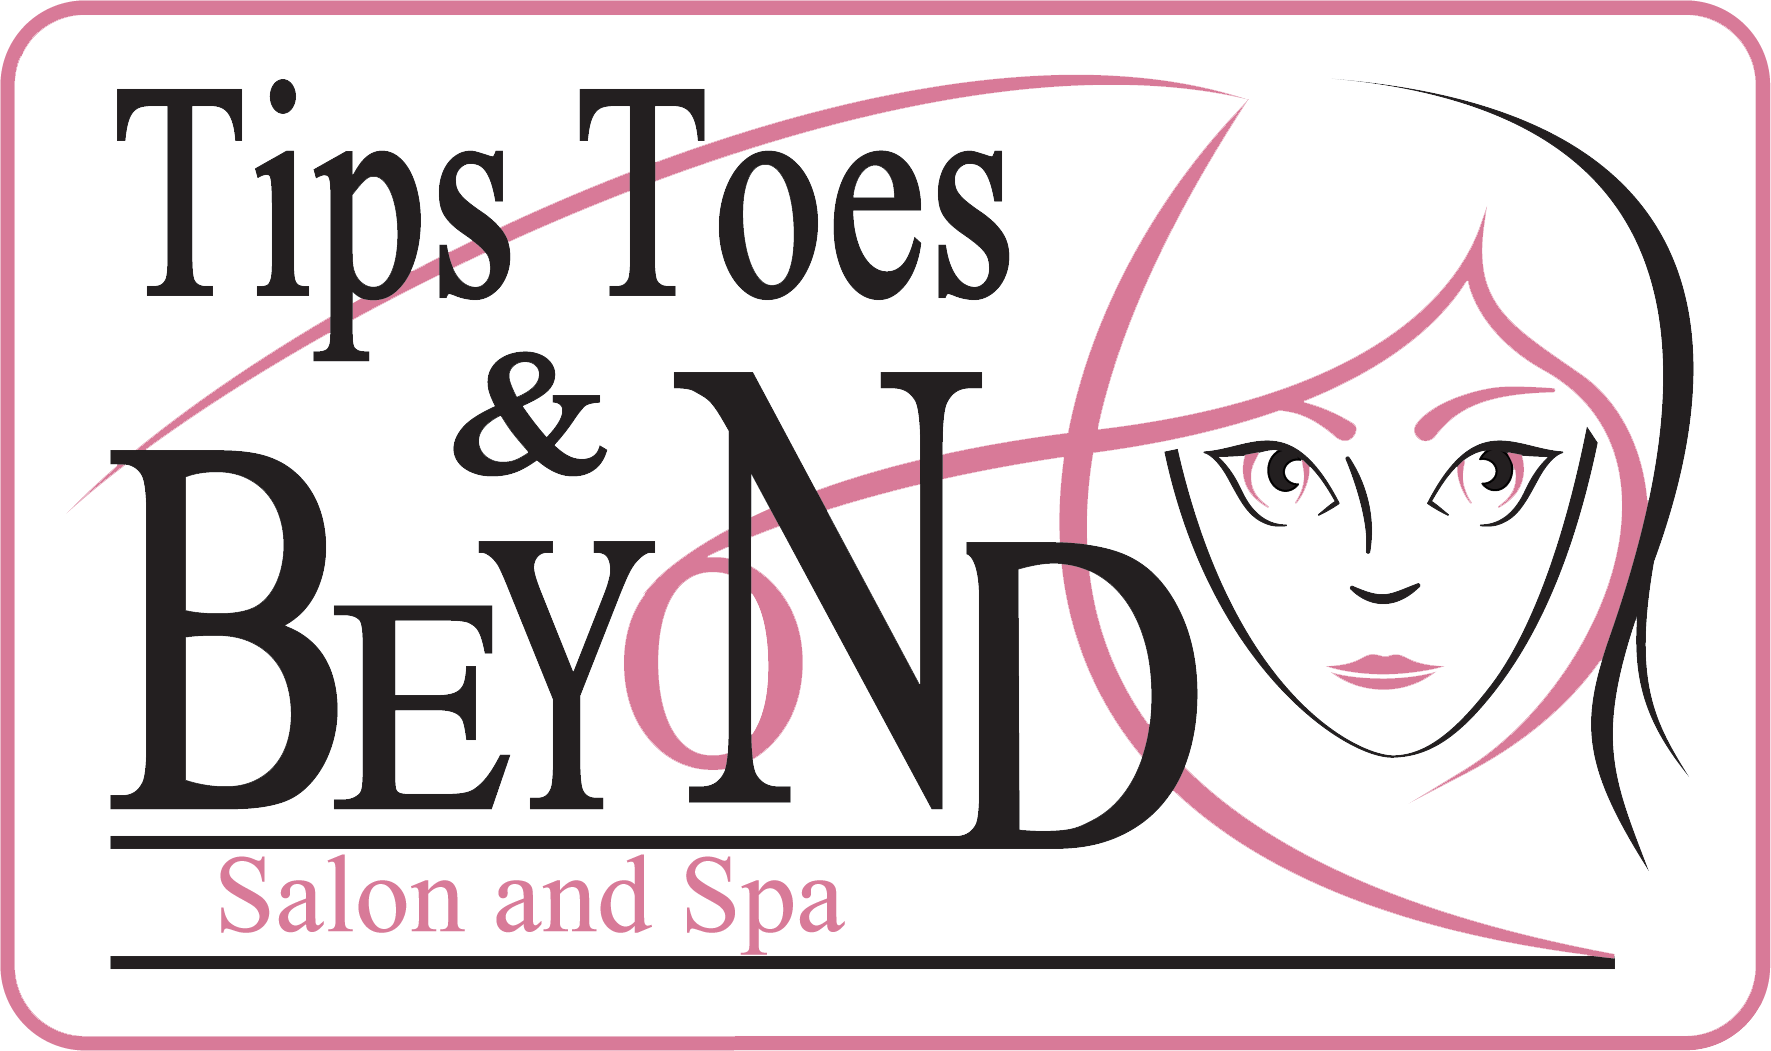 Tips Toes and Beyond